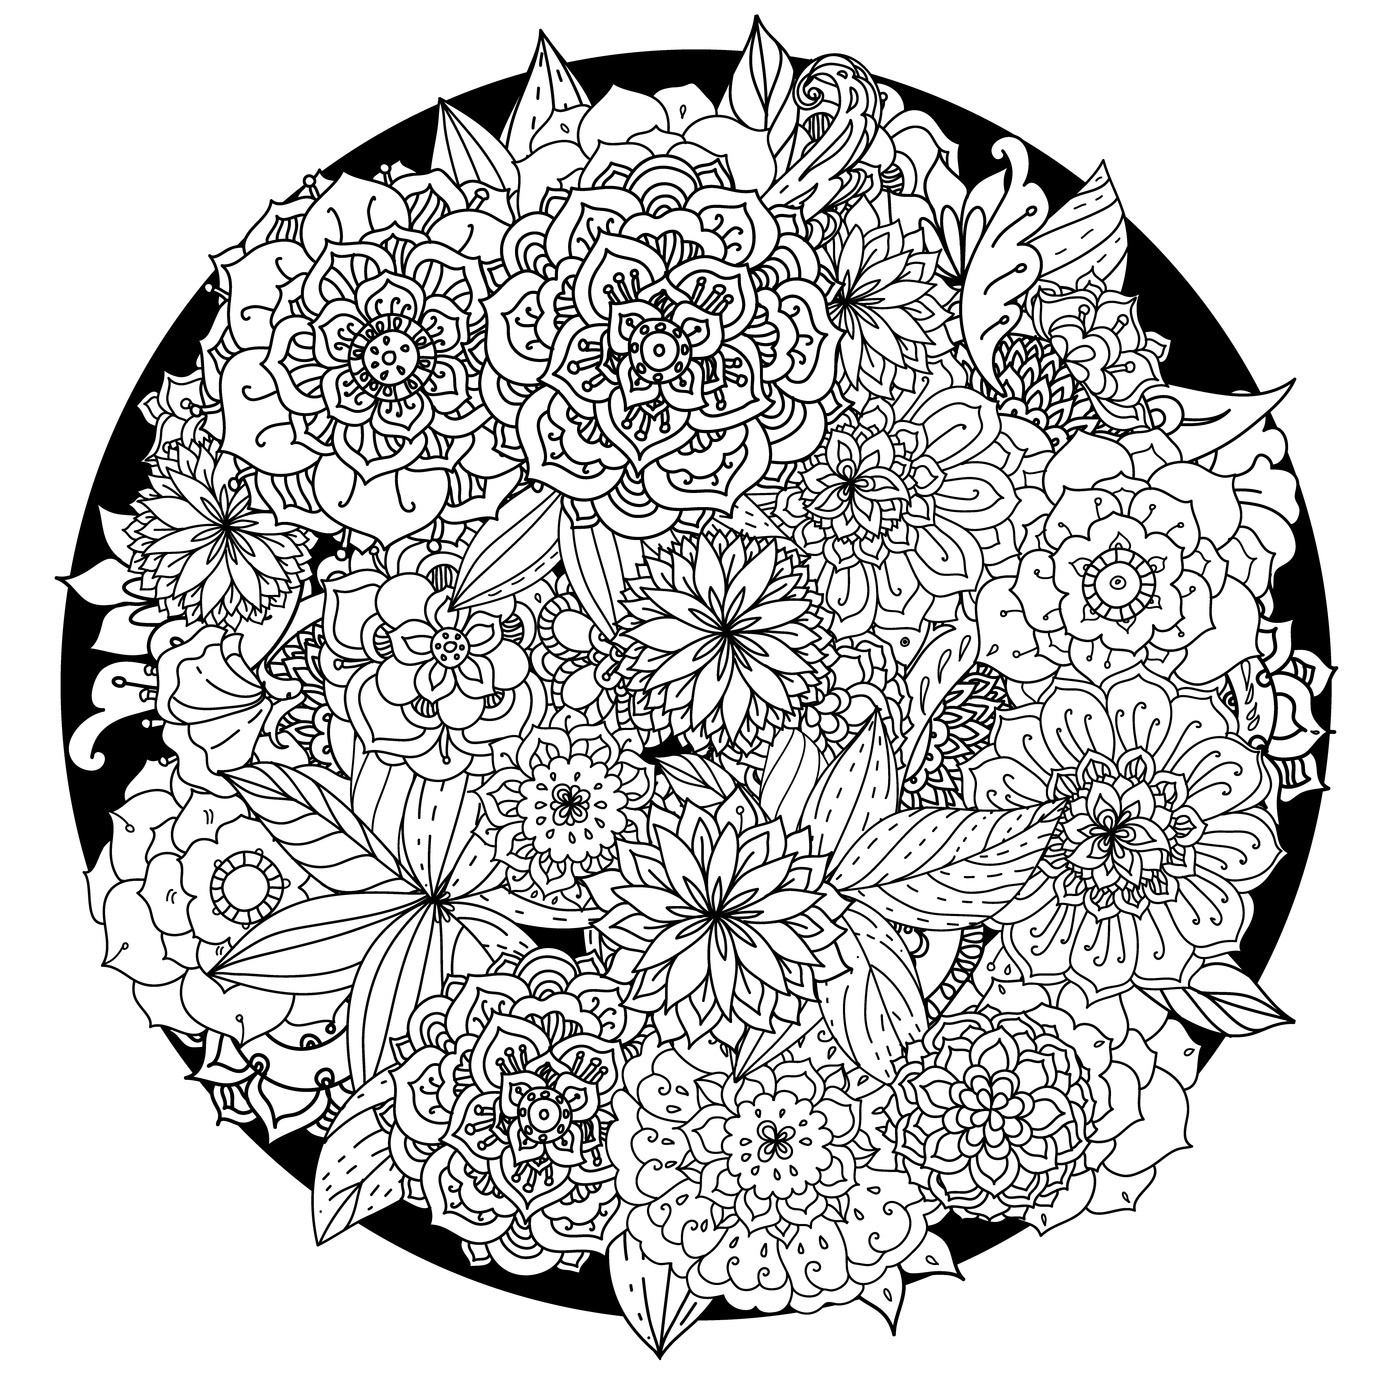 mandalas to color free printable mandalas for adults mandalas to color free